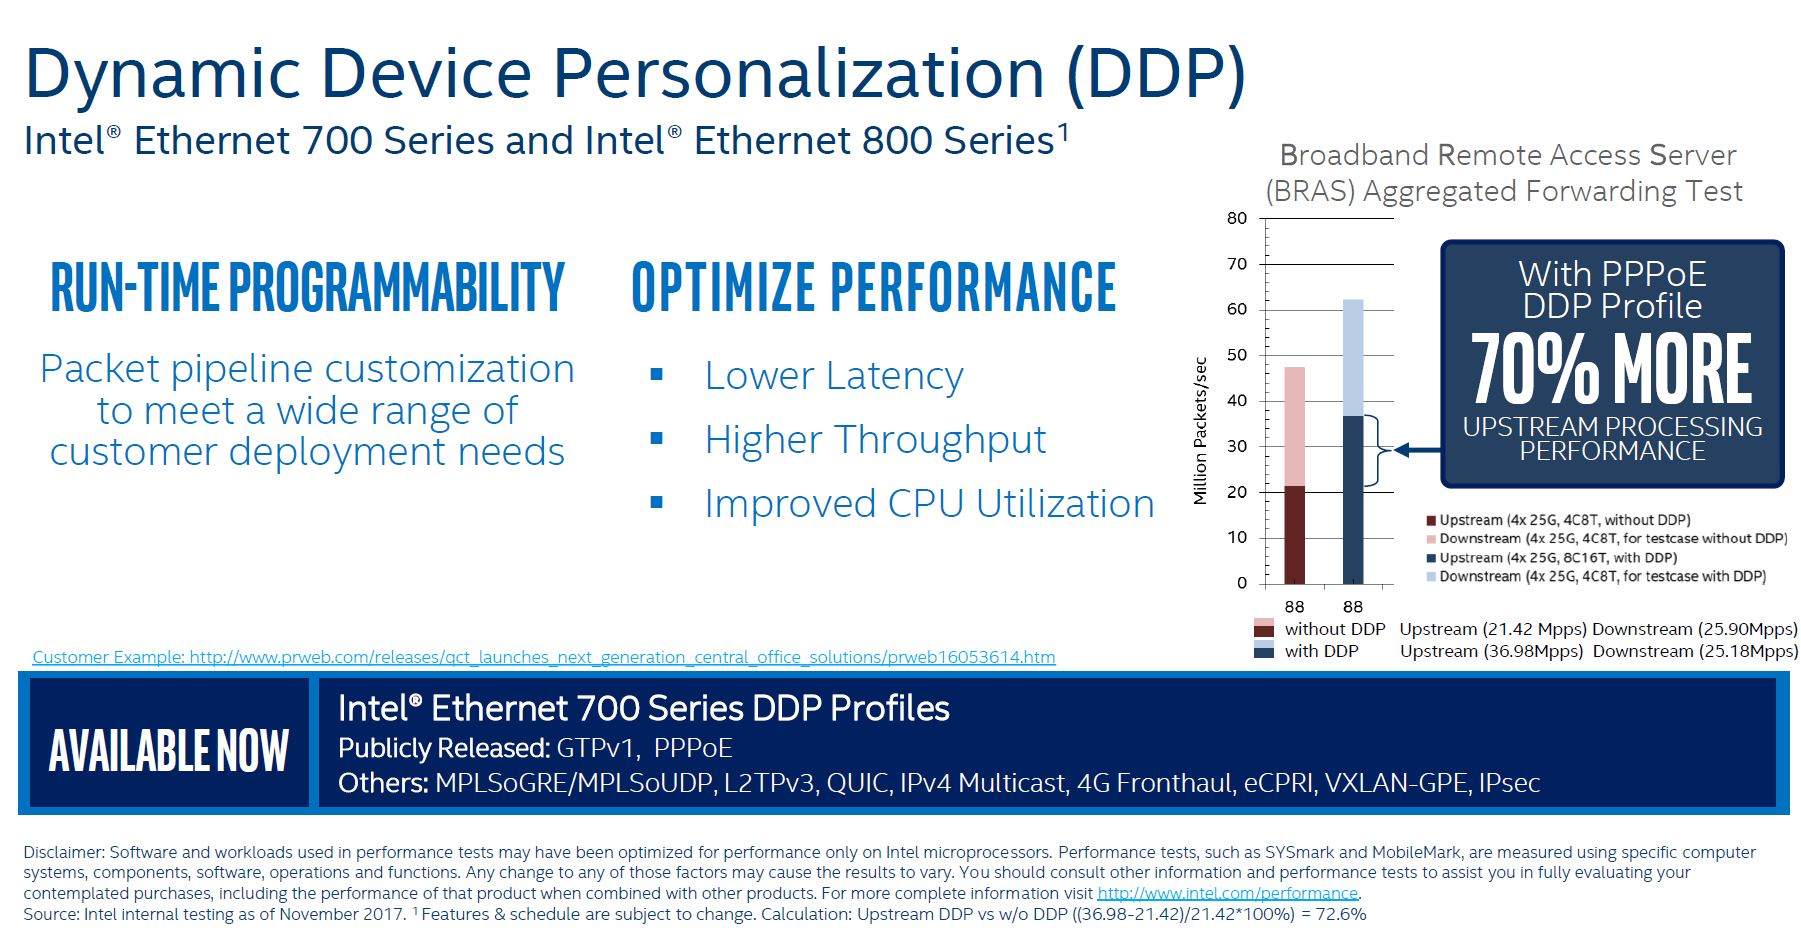 Intel Ethernet 800 And 700 DDP